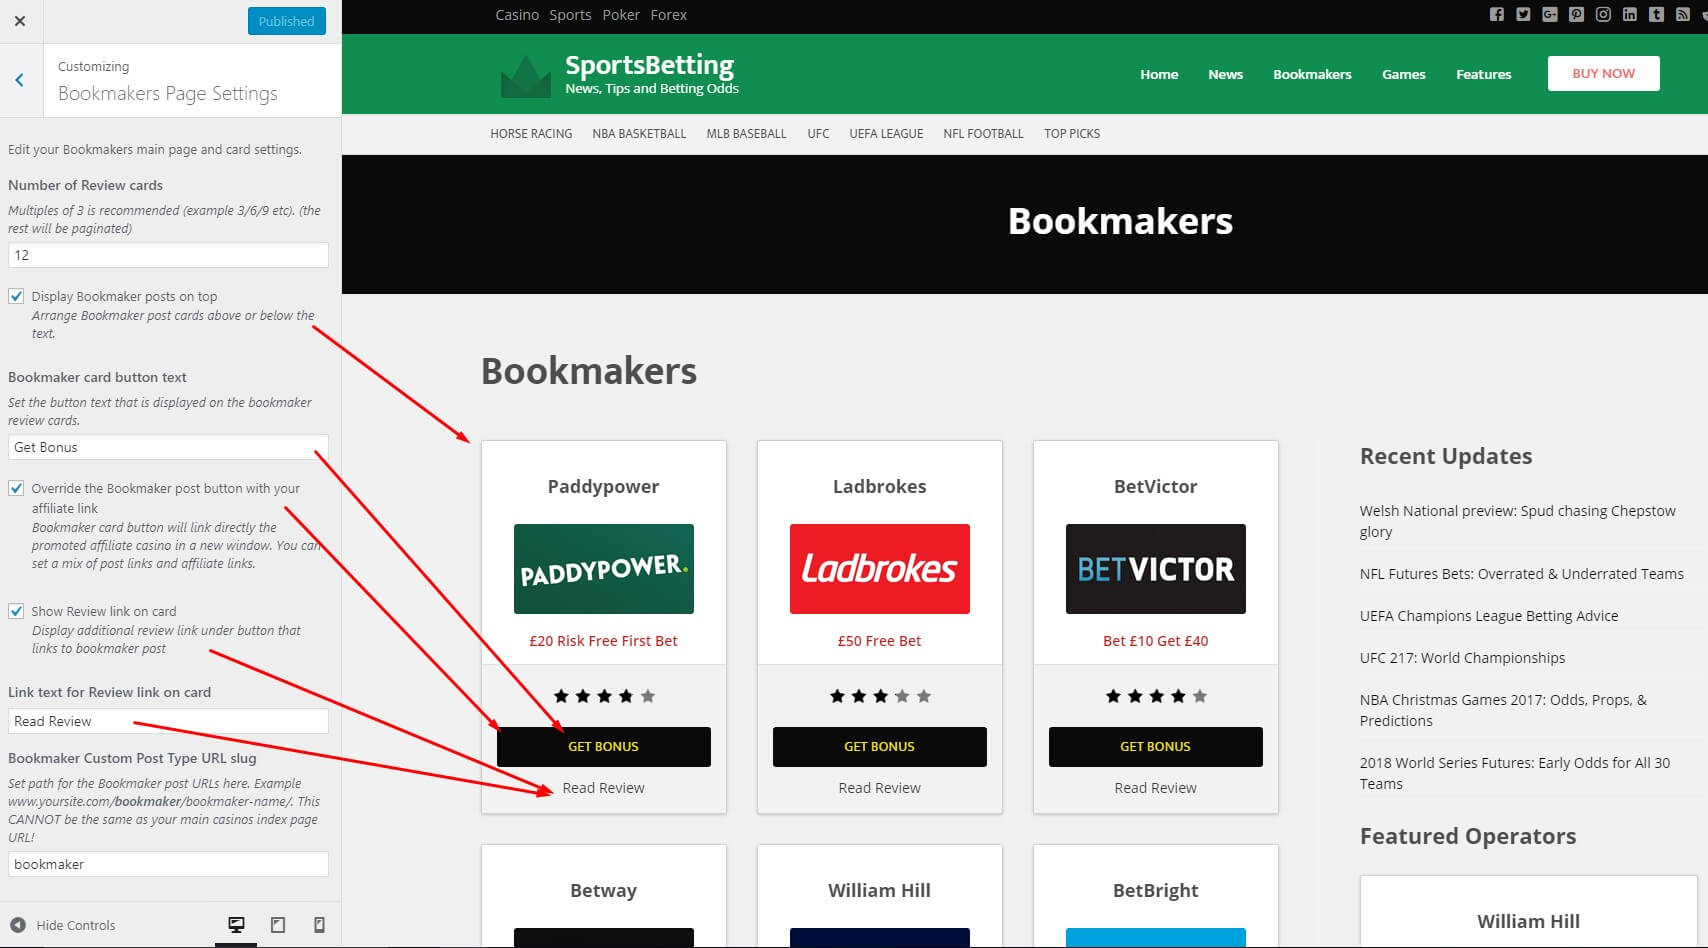 bookmakers-main-page